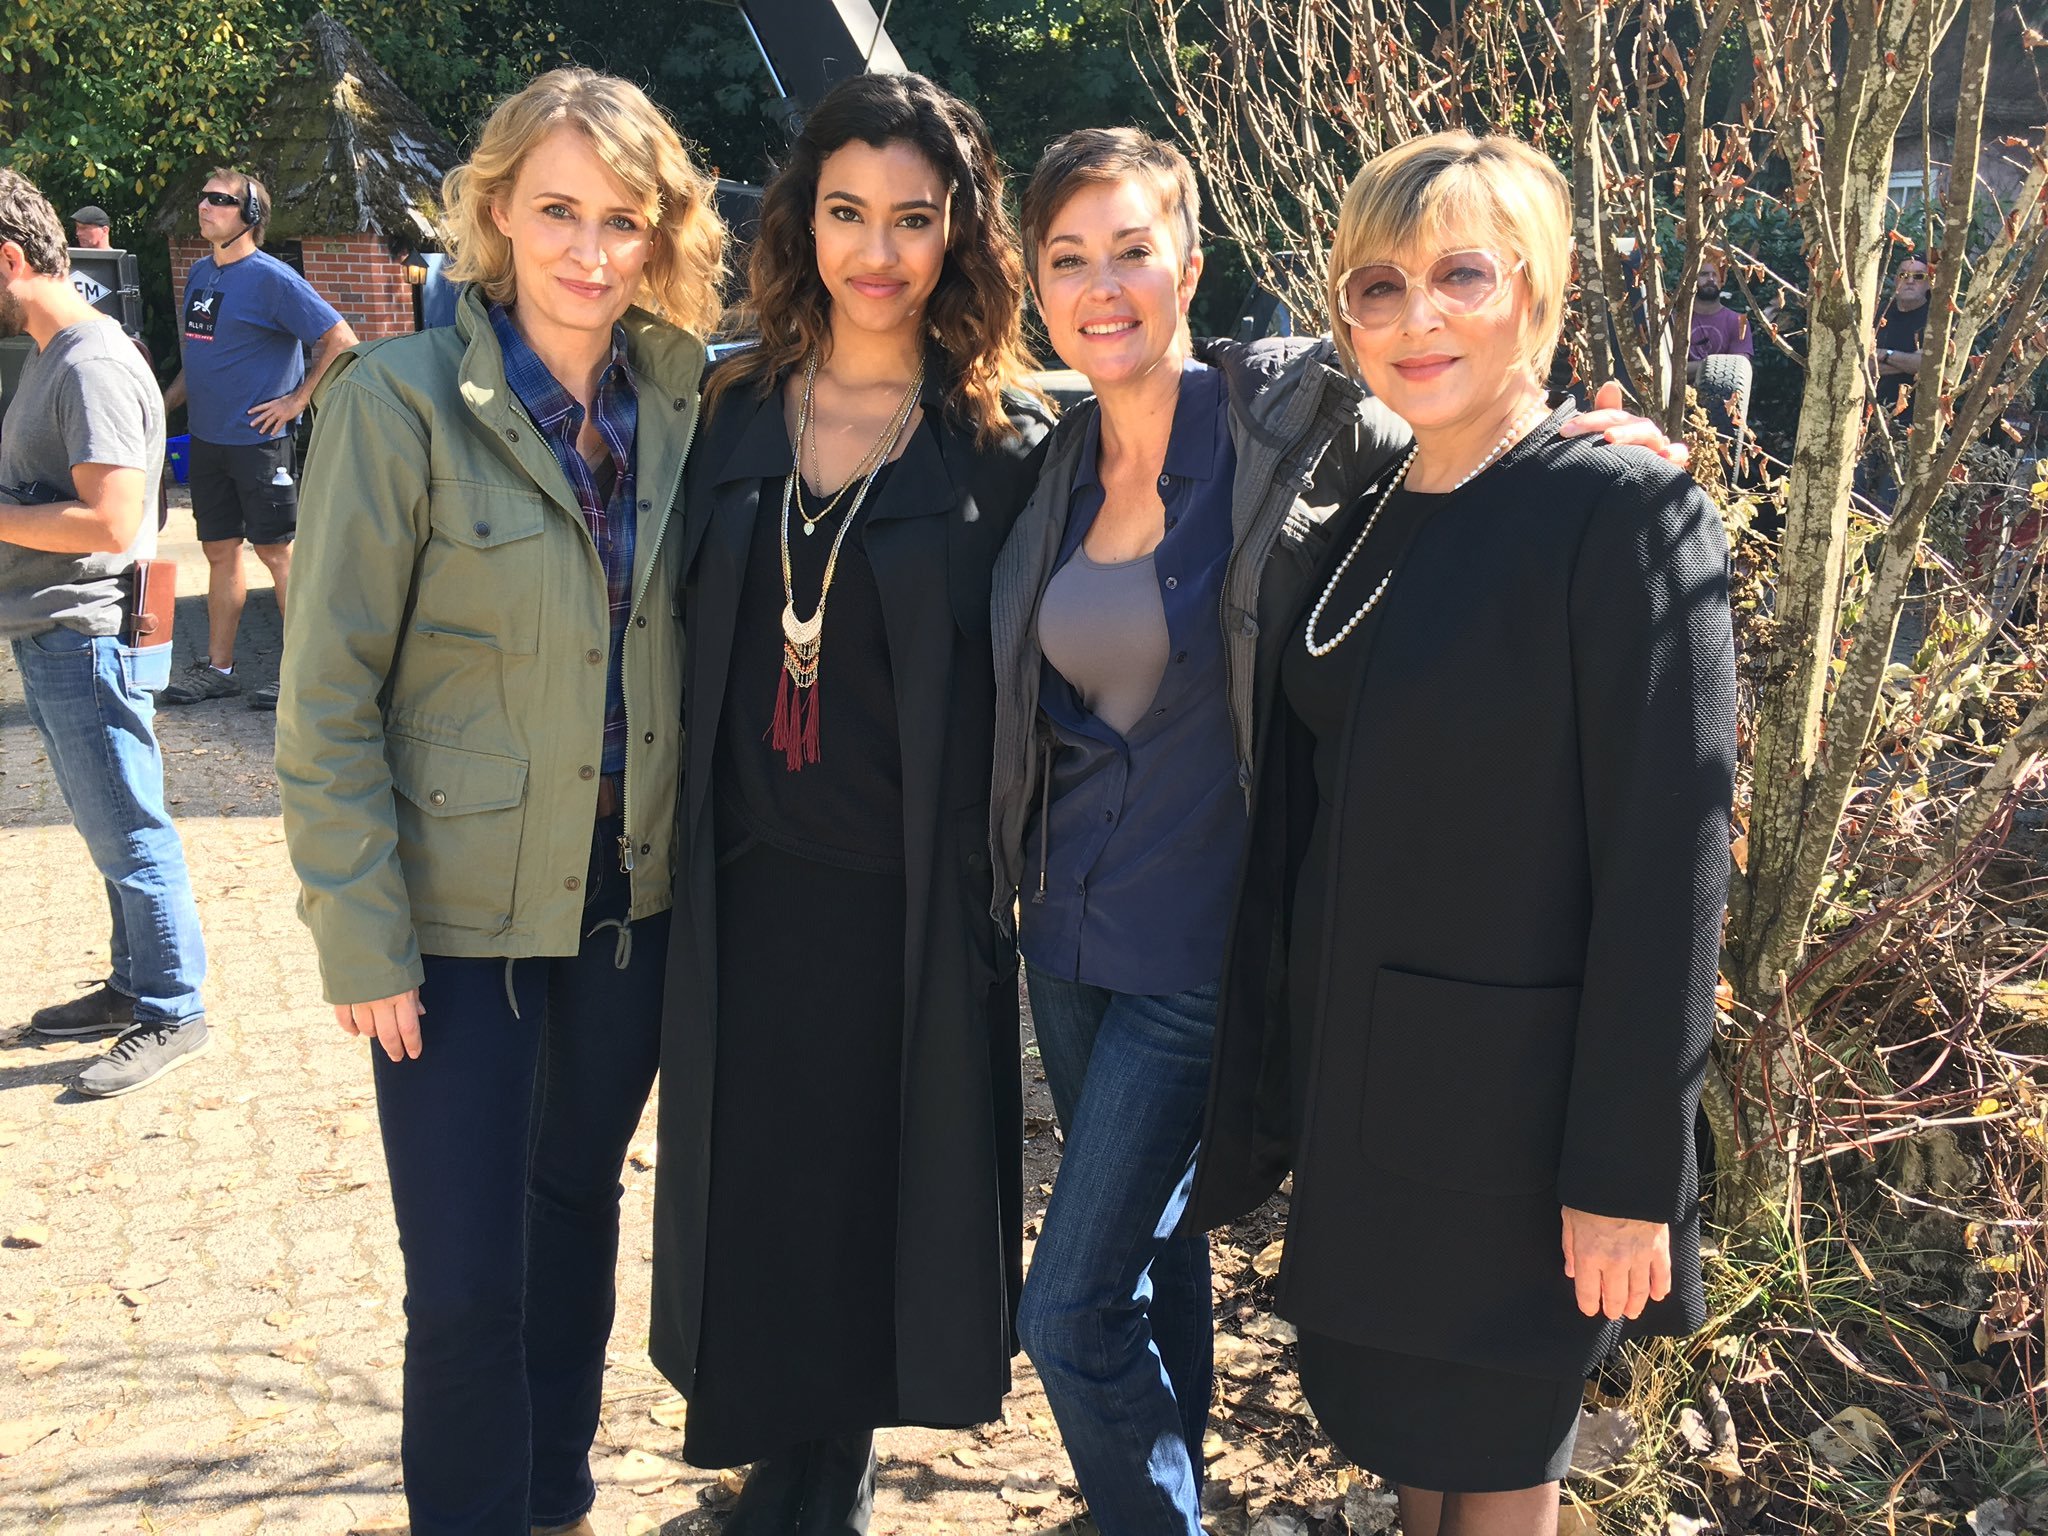 kara royster talks supernatural asa fox and pretty little liars 2016 images